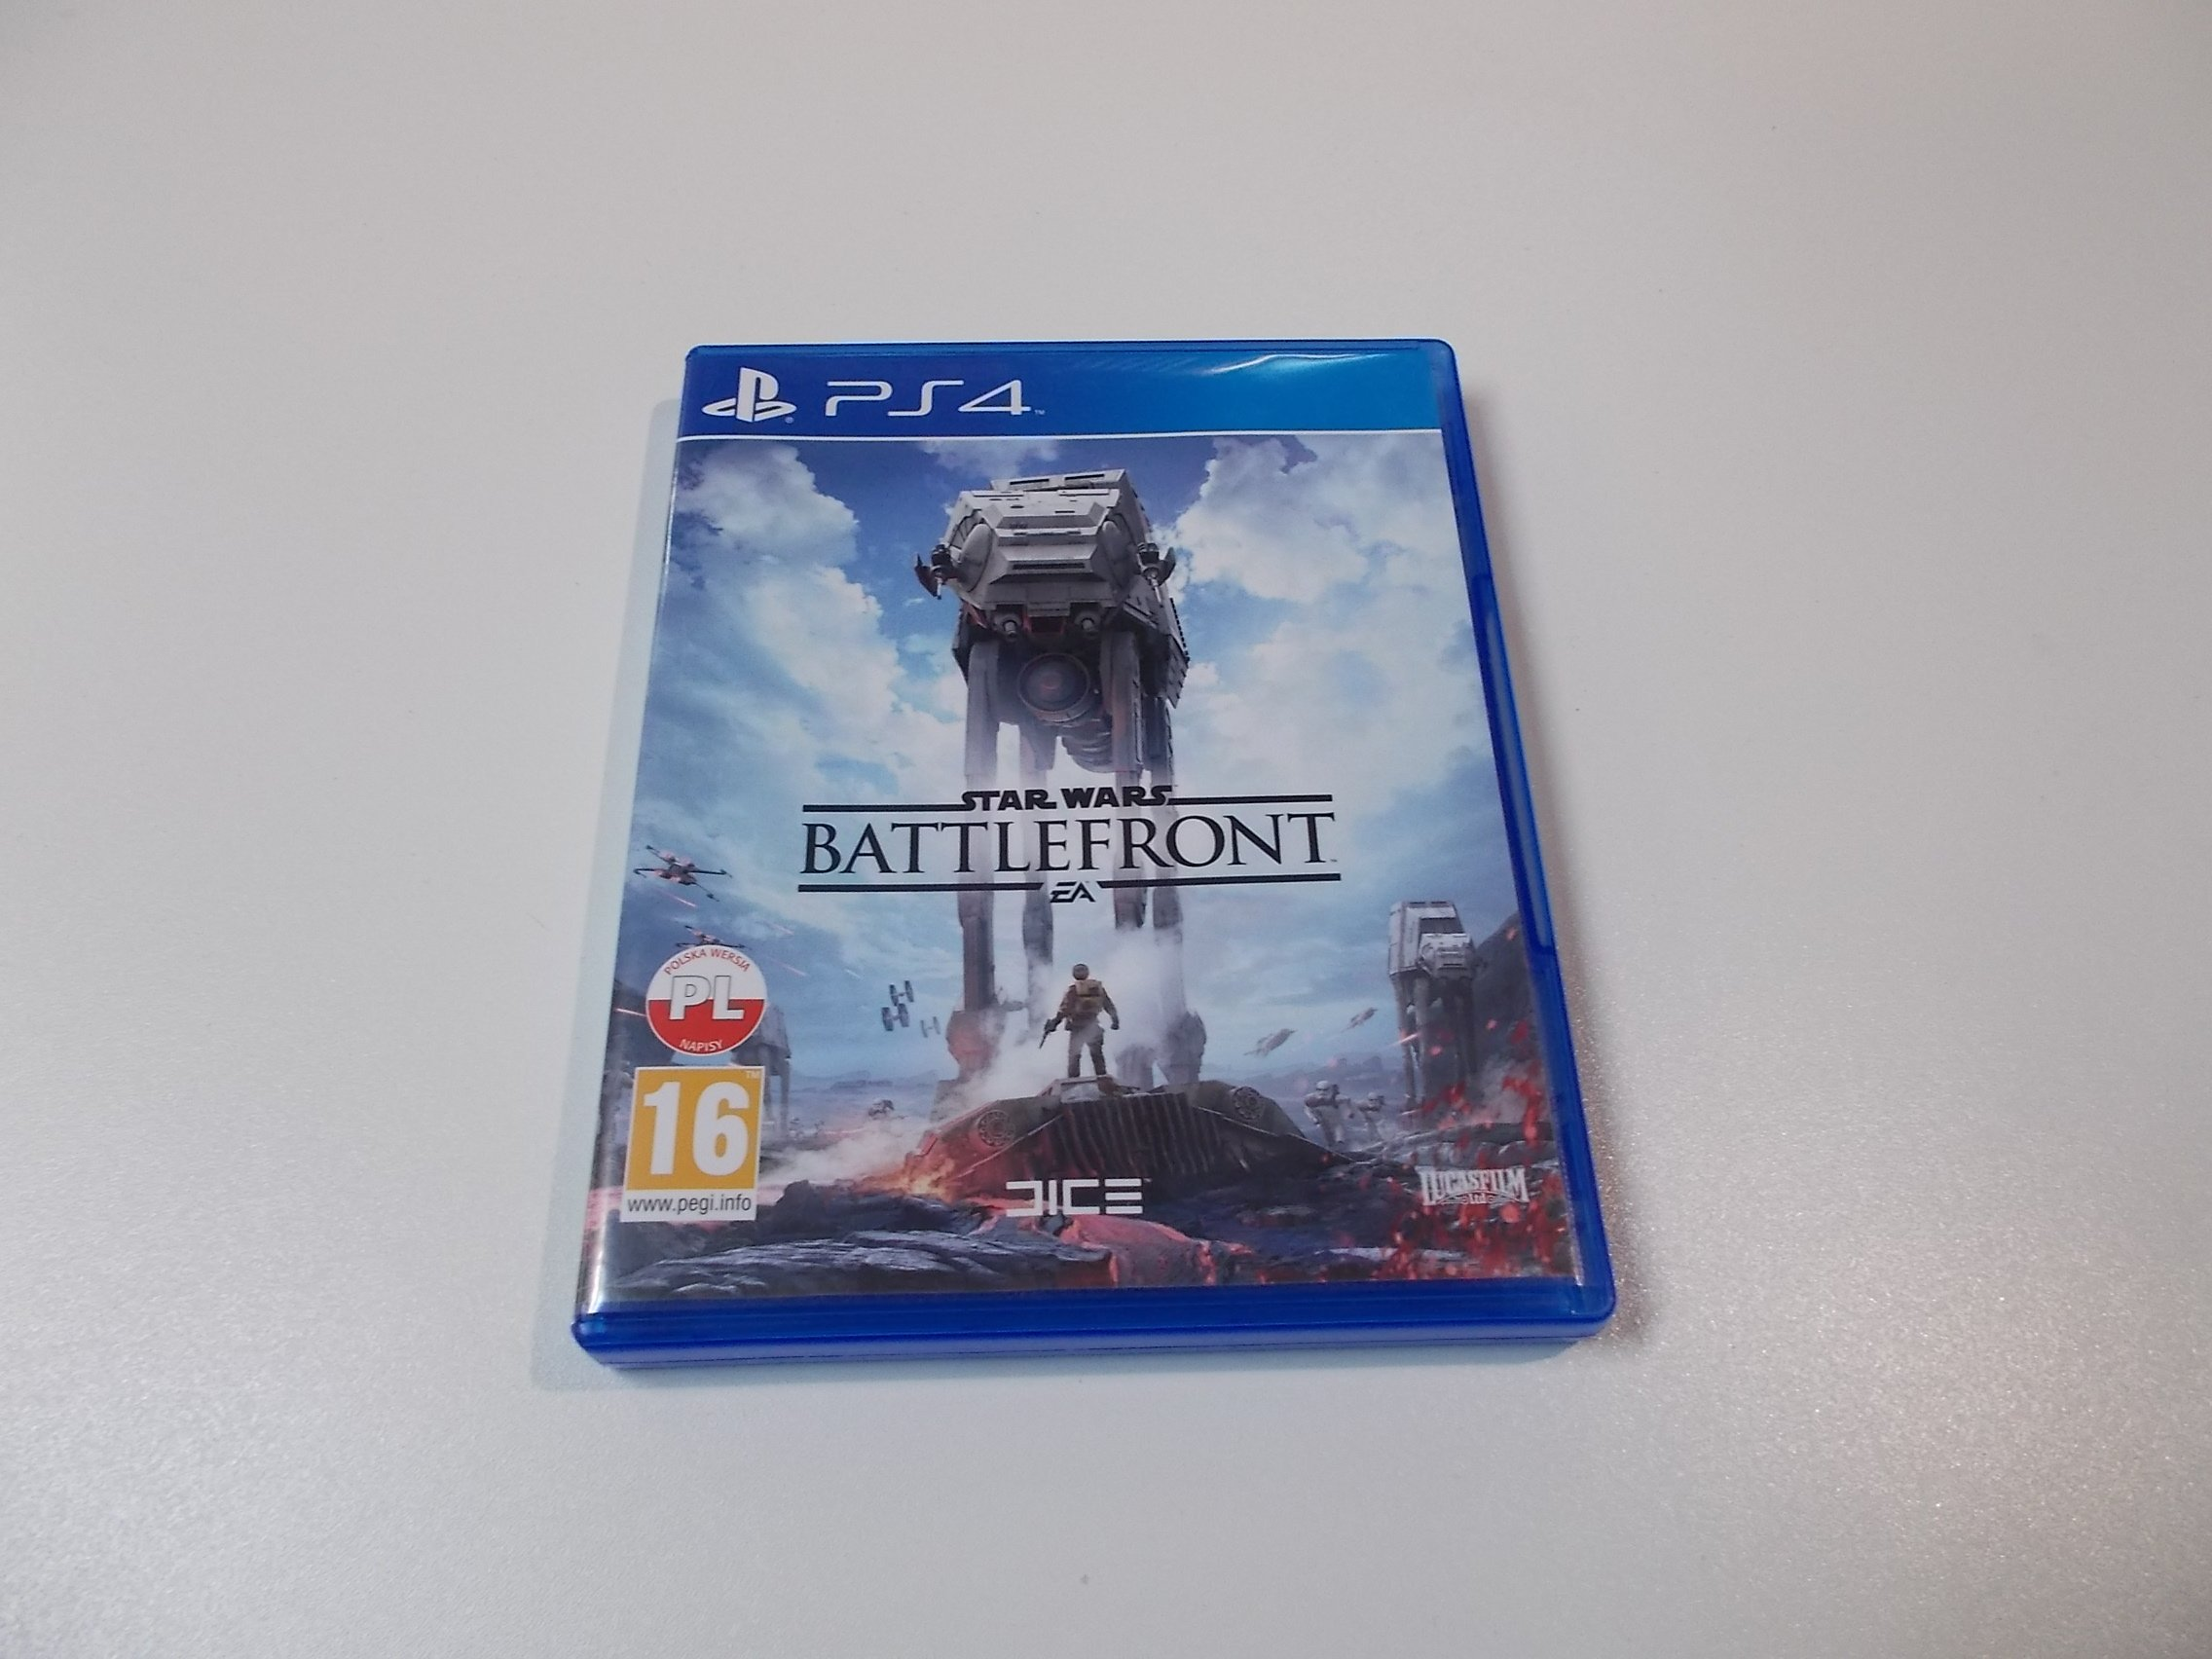 Star Wars Battlefront PL - GRA Ps4 Opole 354